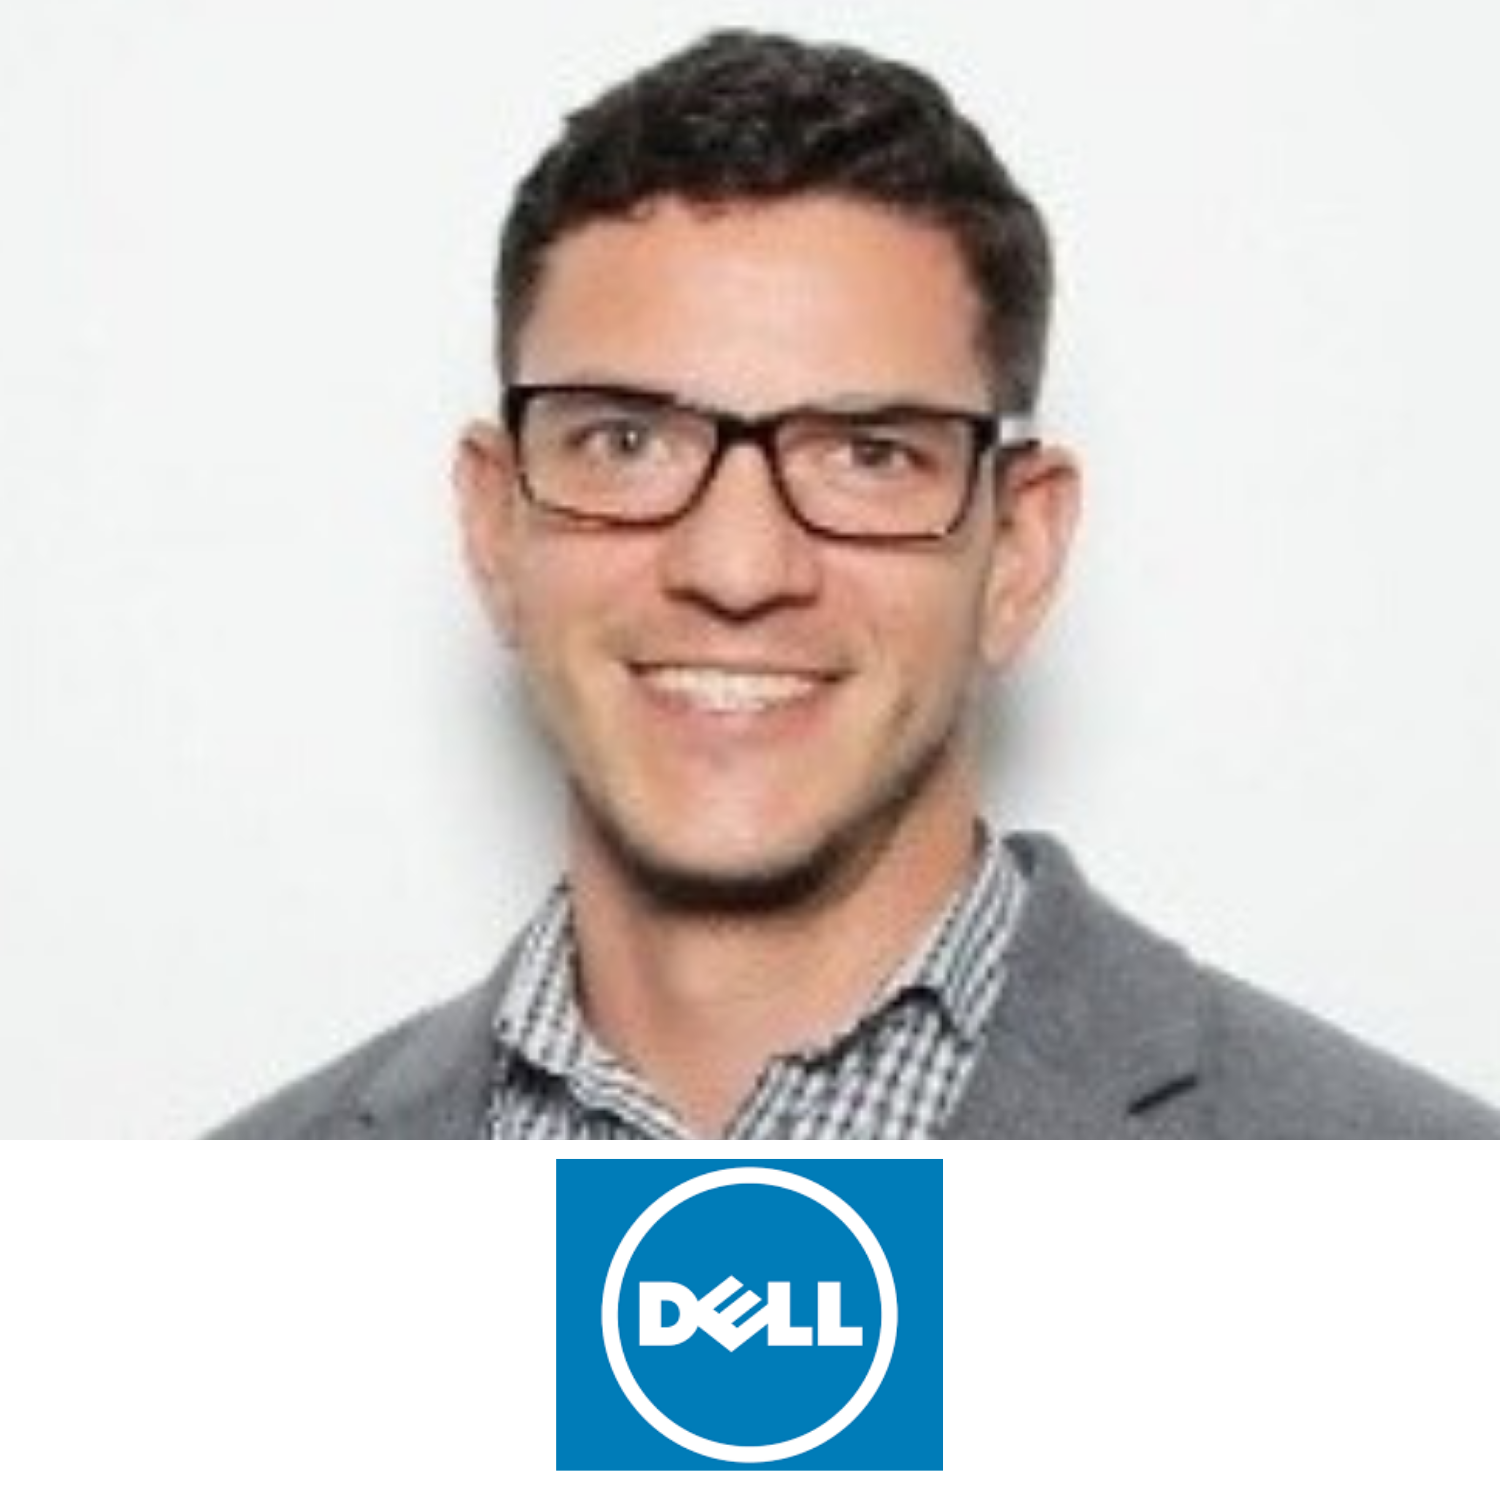 Alberto Arias, Director of Customer Experience Design & Innovation, Dell